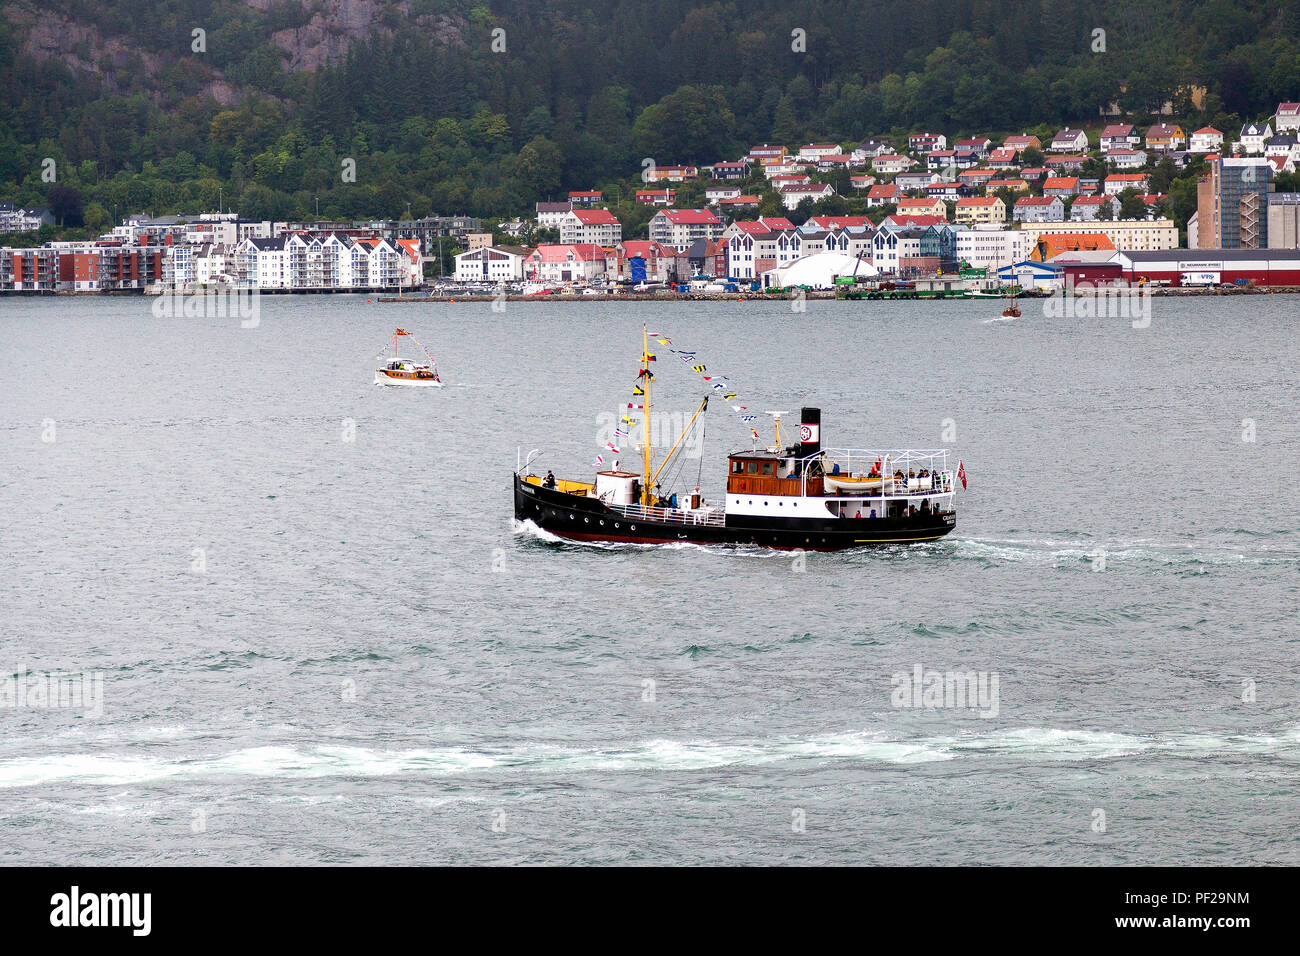 Veteran passenger steamship Granvin (built 1931) sailing from the port of Bergen, Norway to Byfjorden on a grey and rainful day. Fjordsteam 2018,. - Stock Image